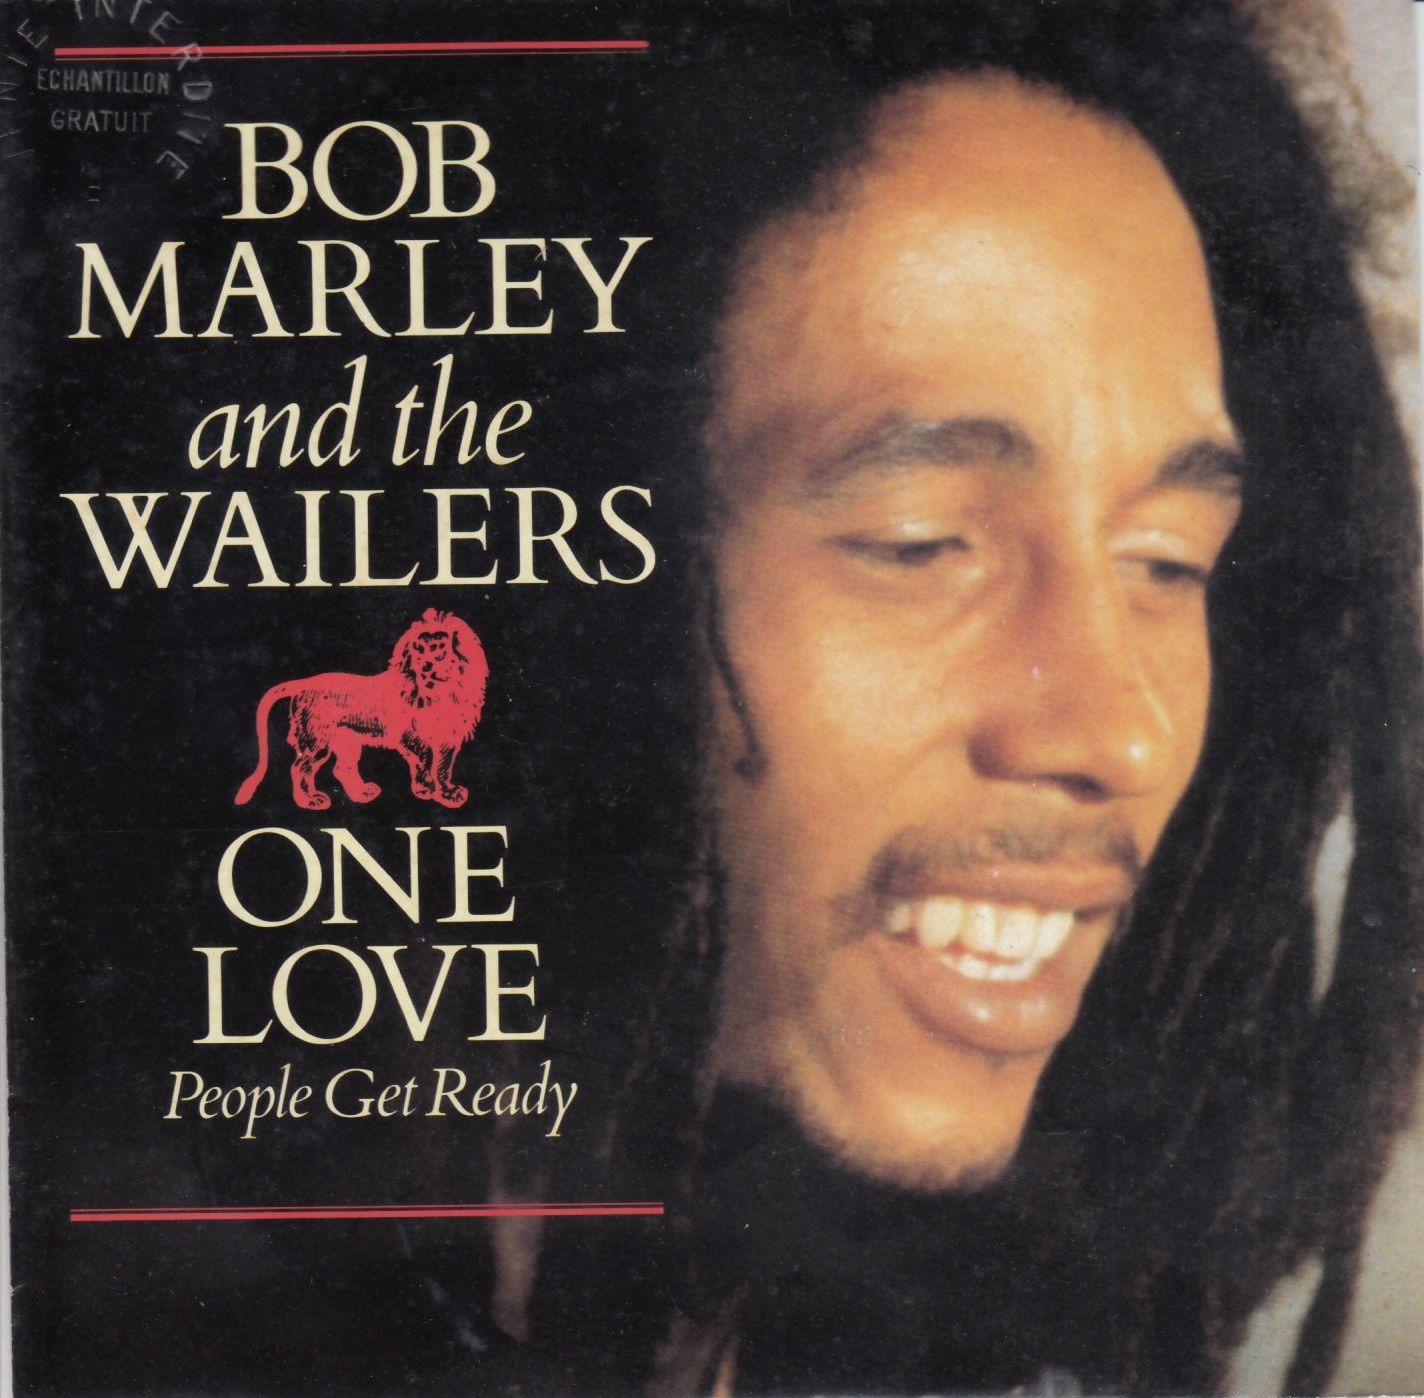 ONE LOVE-PEOPLE GET READY (EX)  / SO MUCH TROUBLE IN THE WORLD (EX)